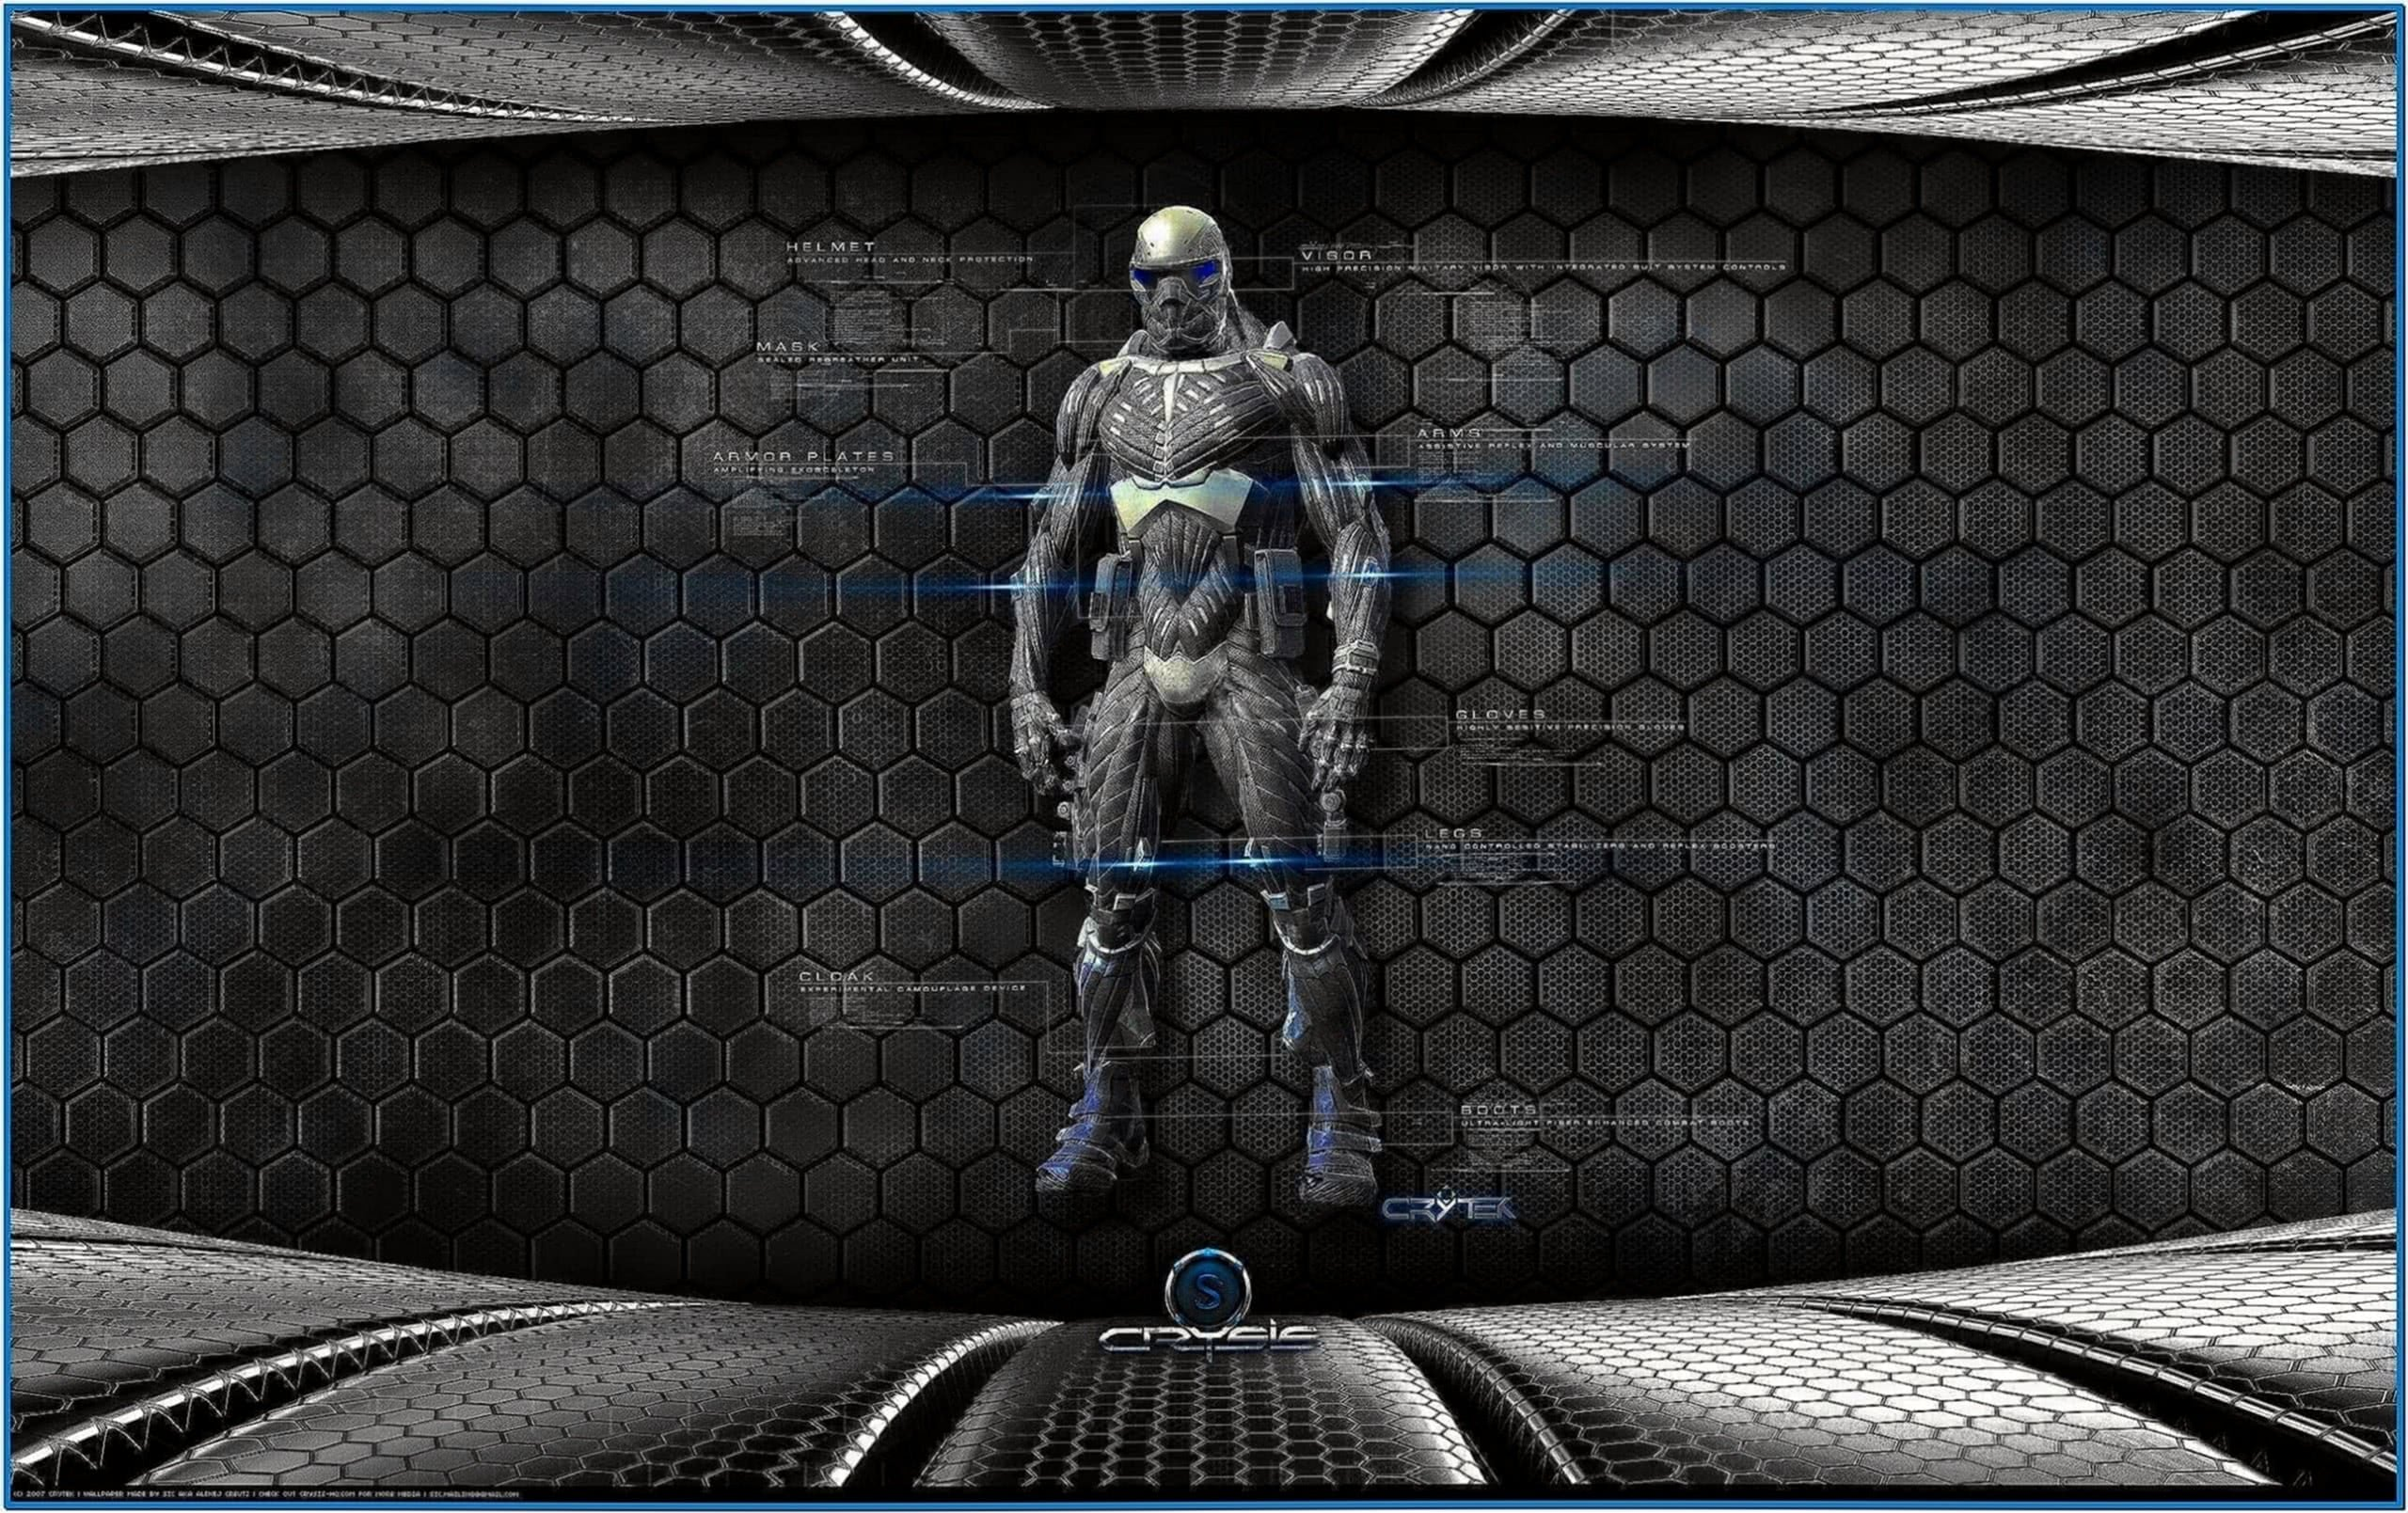 Crysis Nanosuit Screensaver